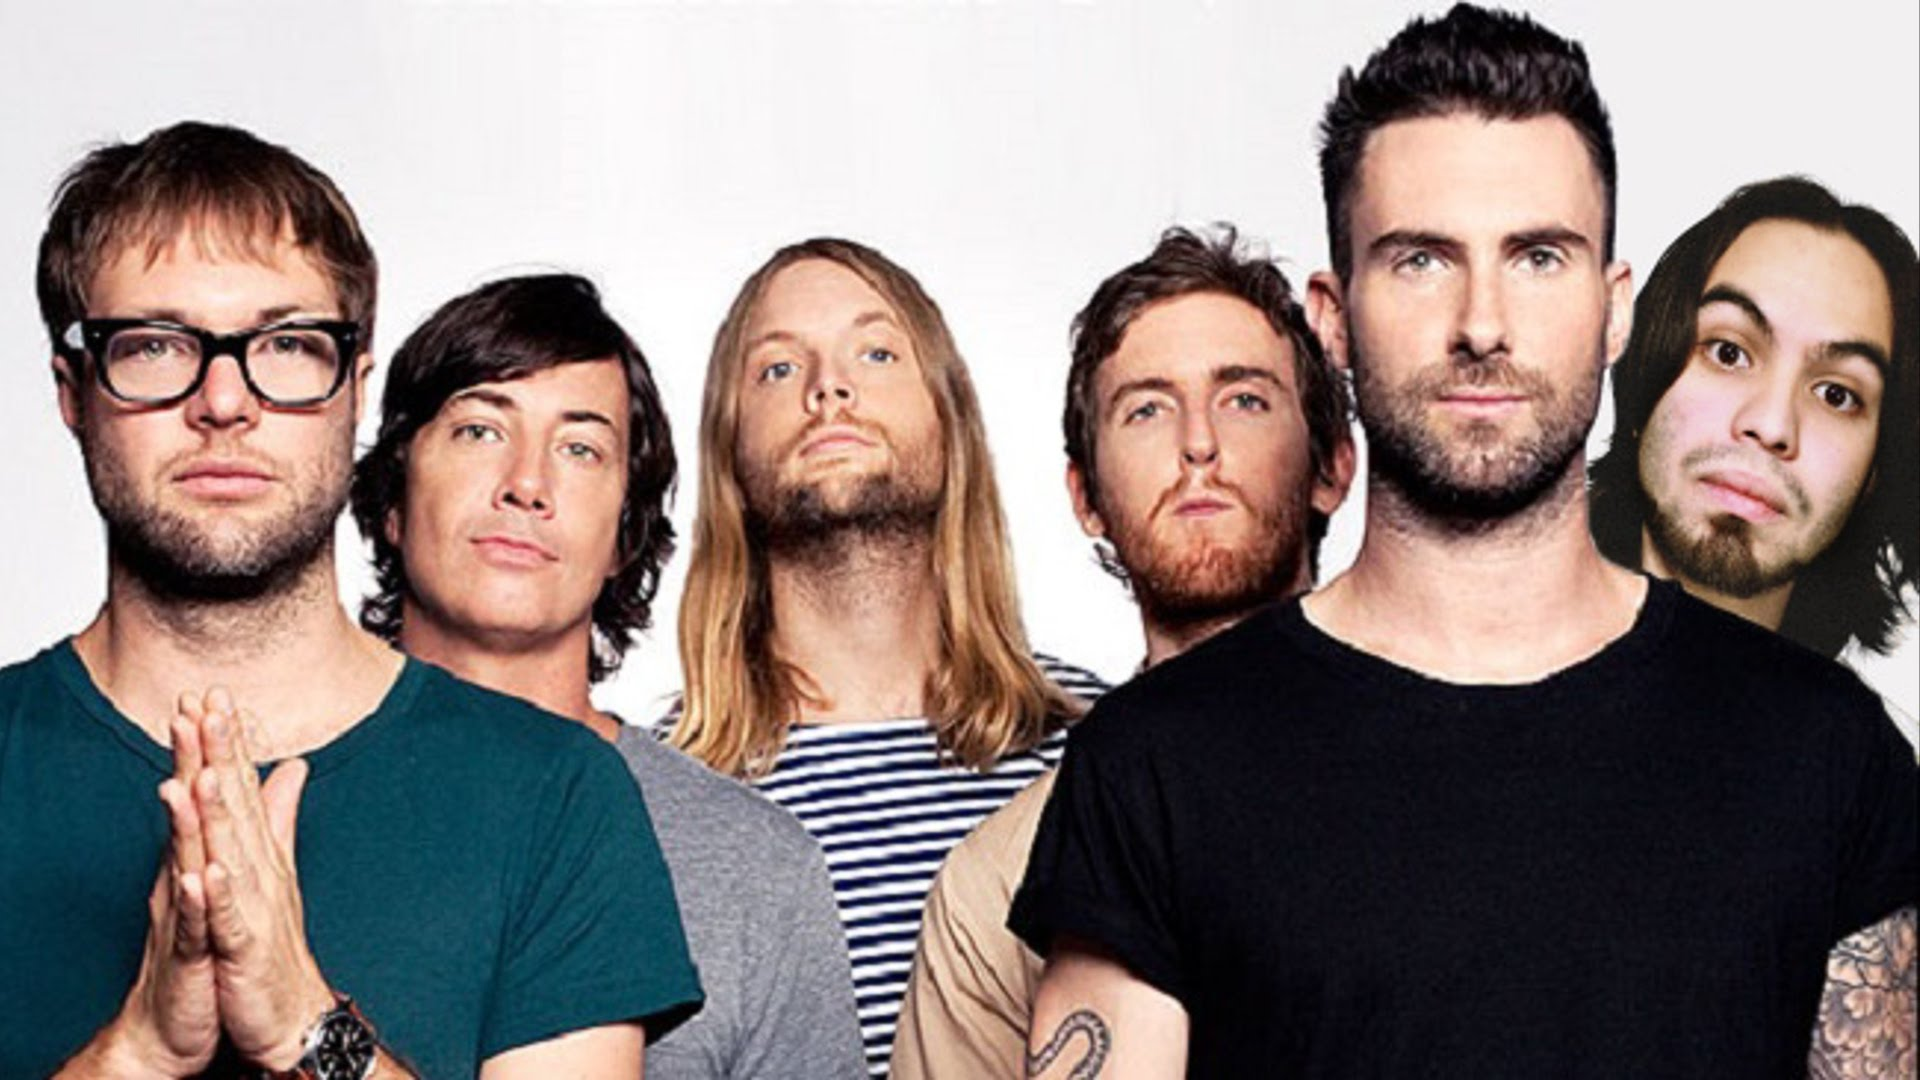 Maroon 5 banned from China after Tweets to Dalai Lama